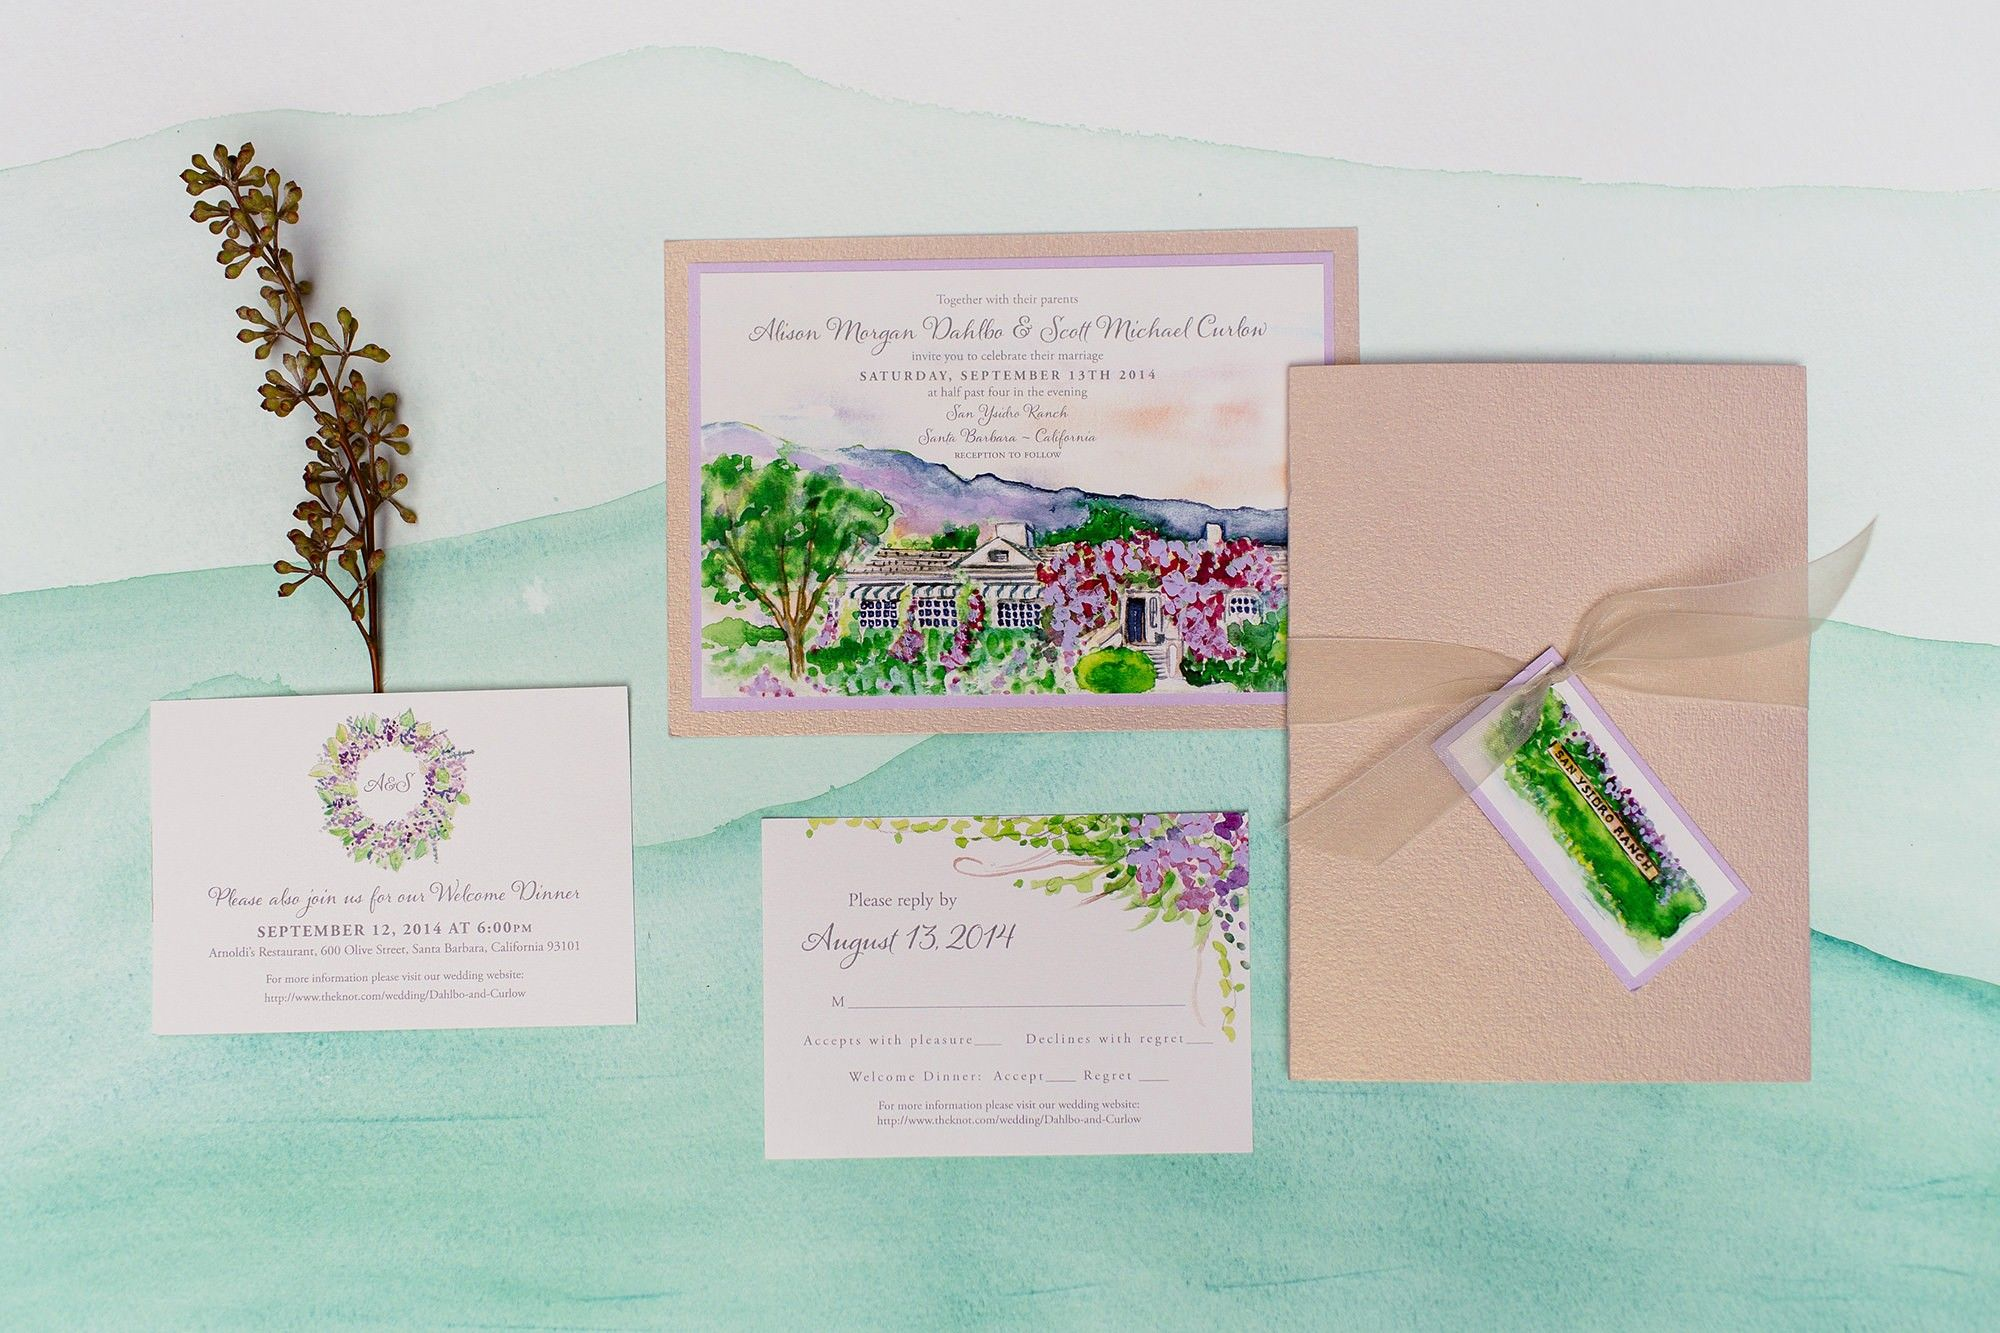 Painted Landscape Wedding Invitations | Pinterest | Weddings ...